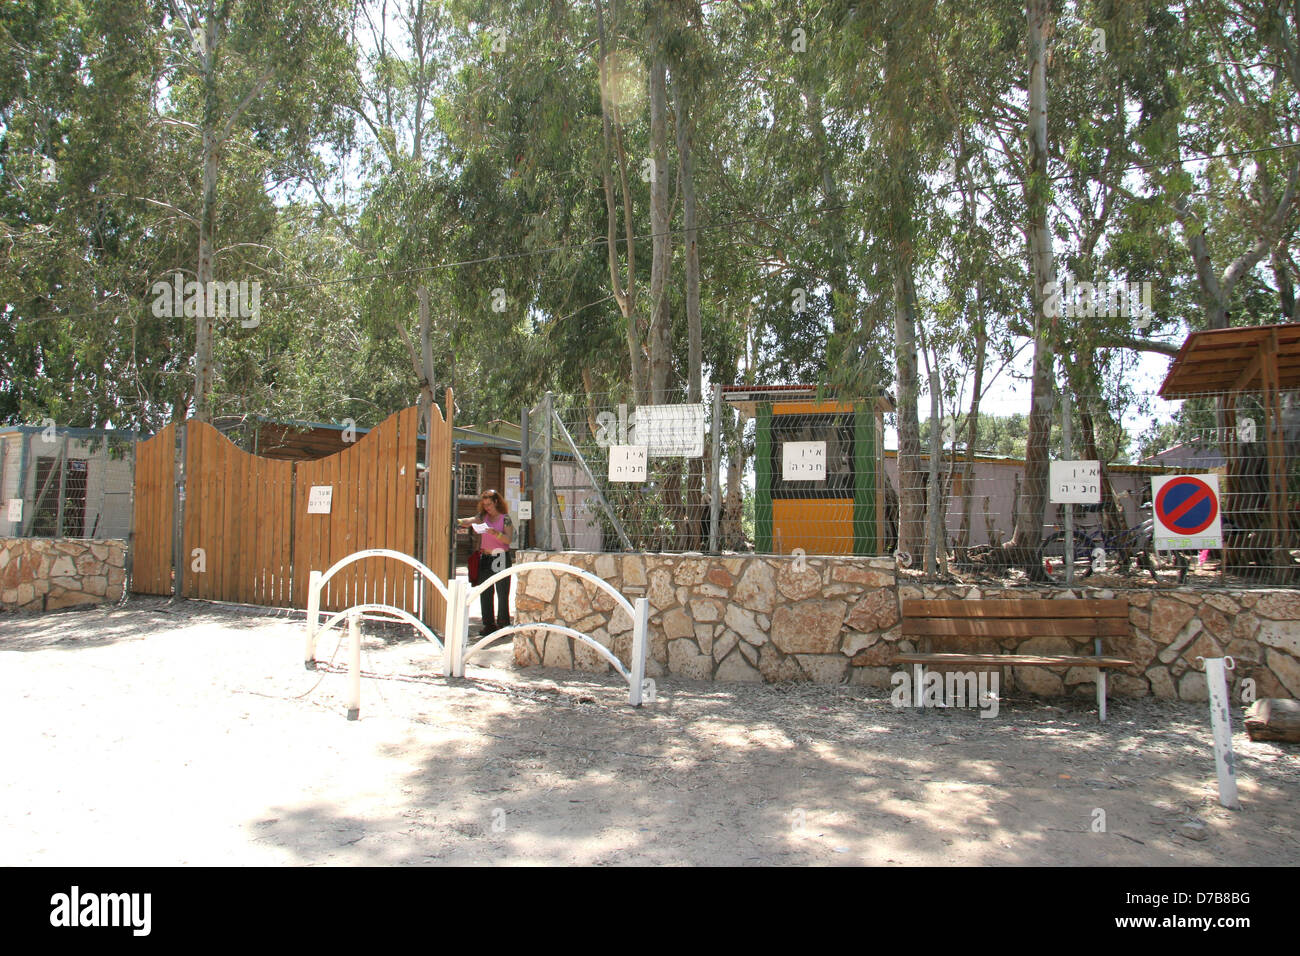 the democratic school in hadera - Stock Image